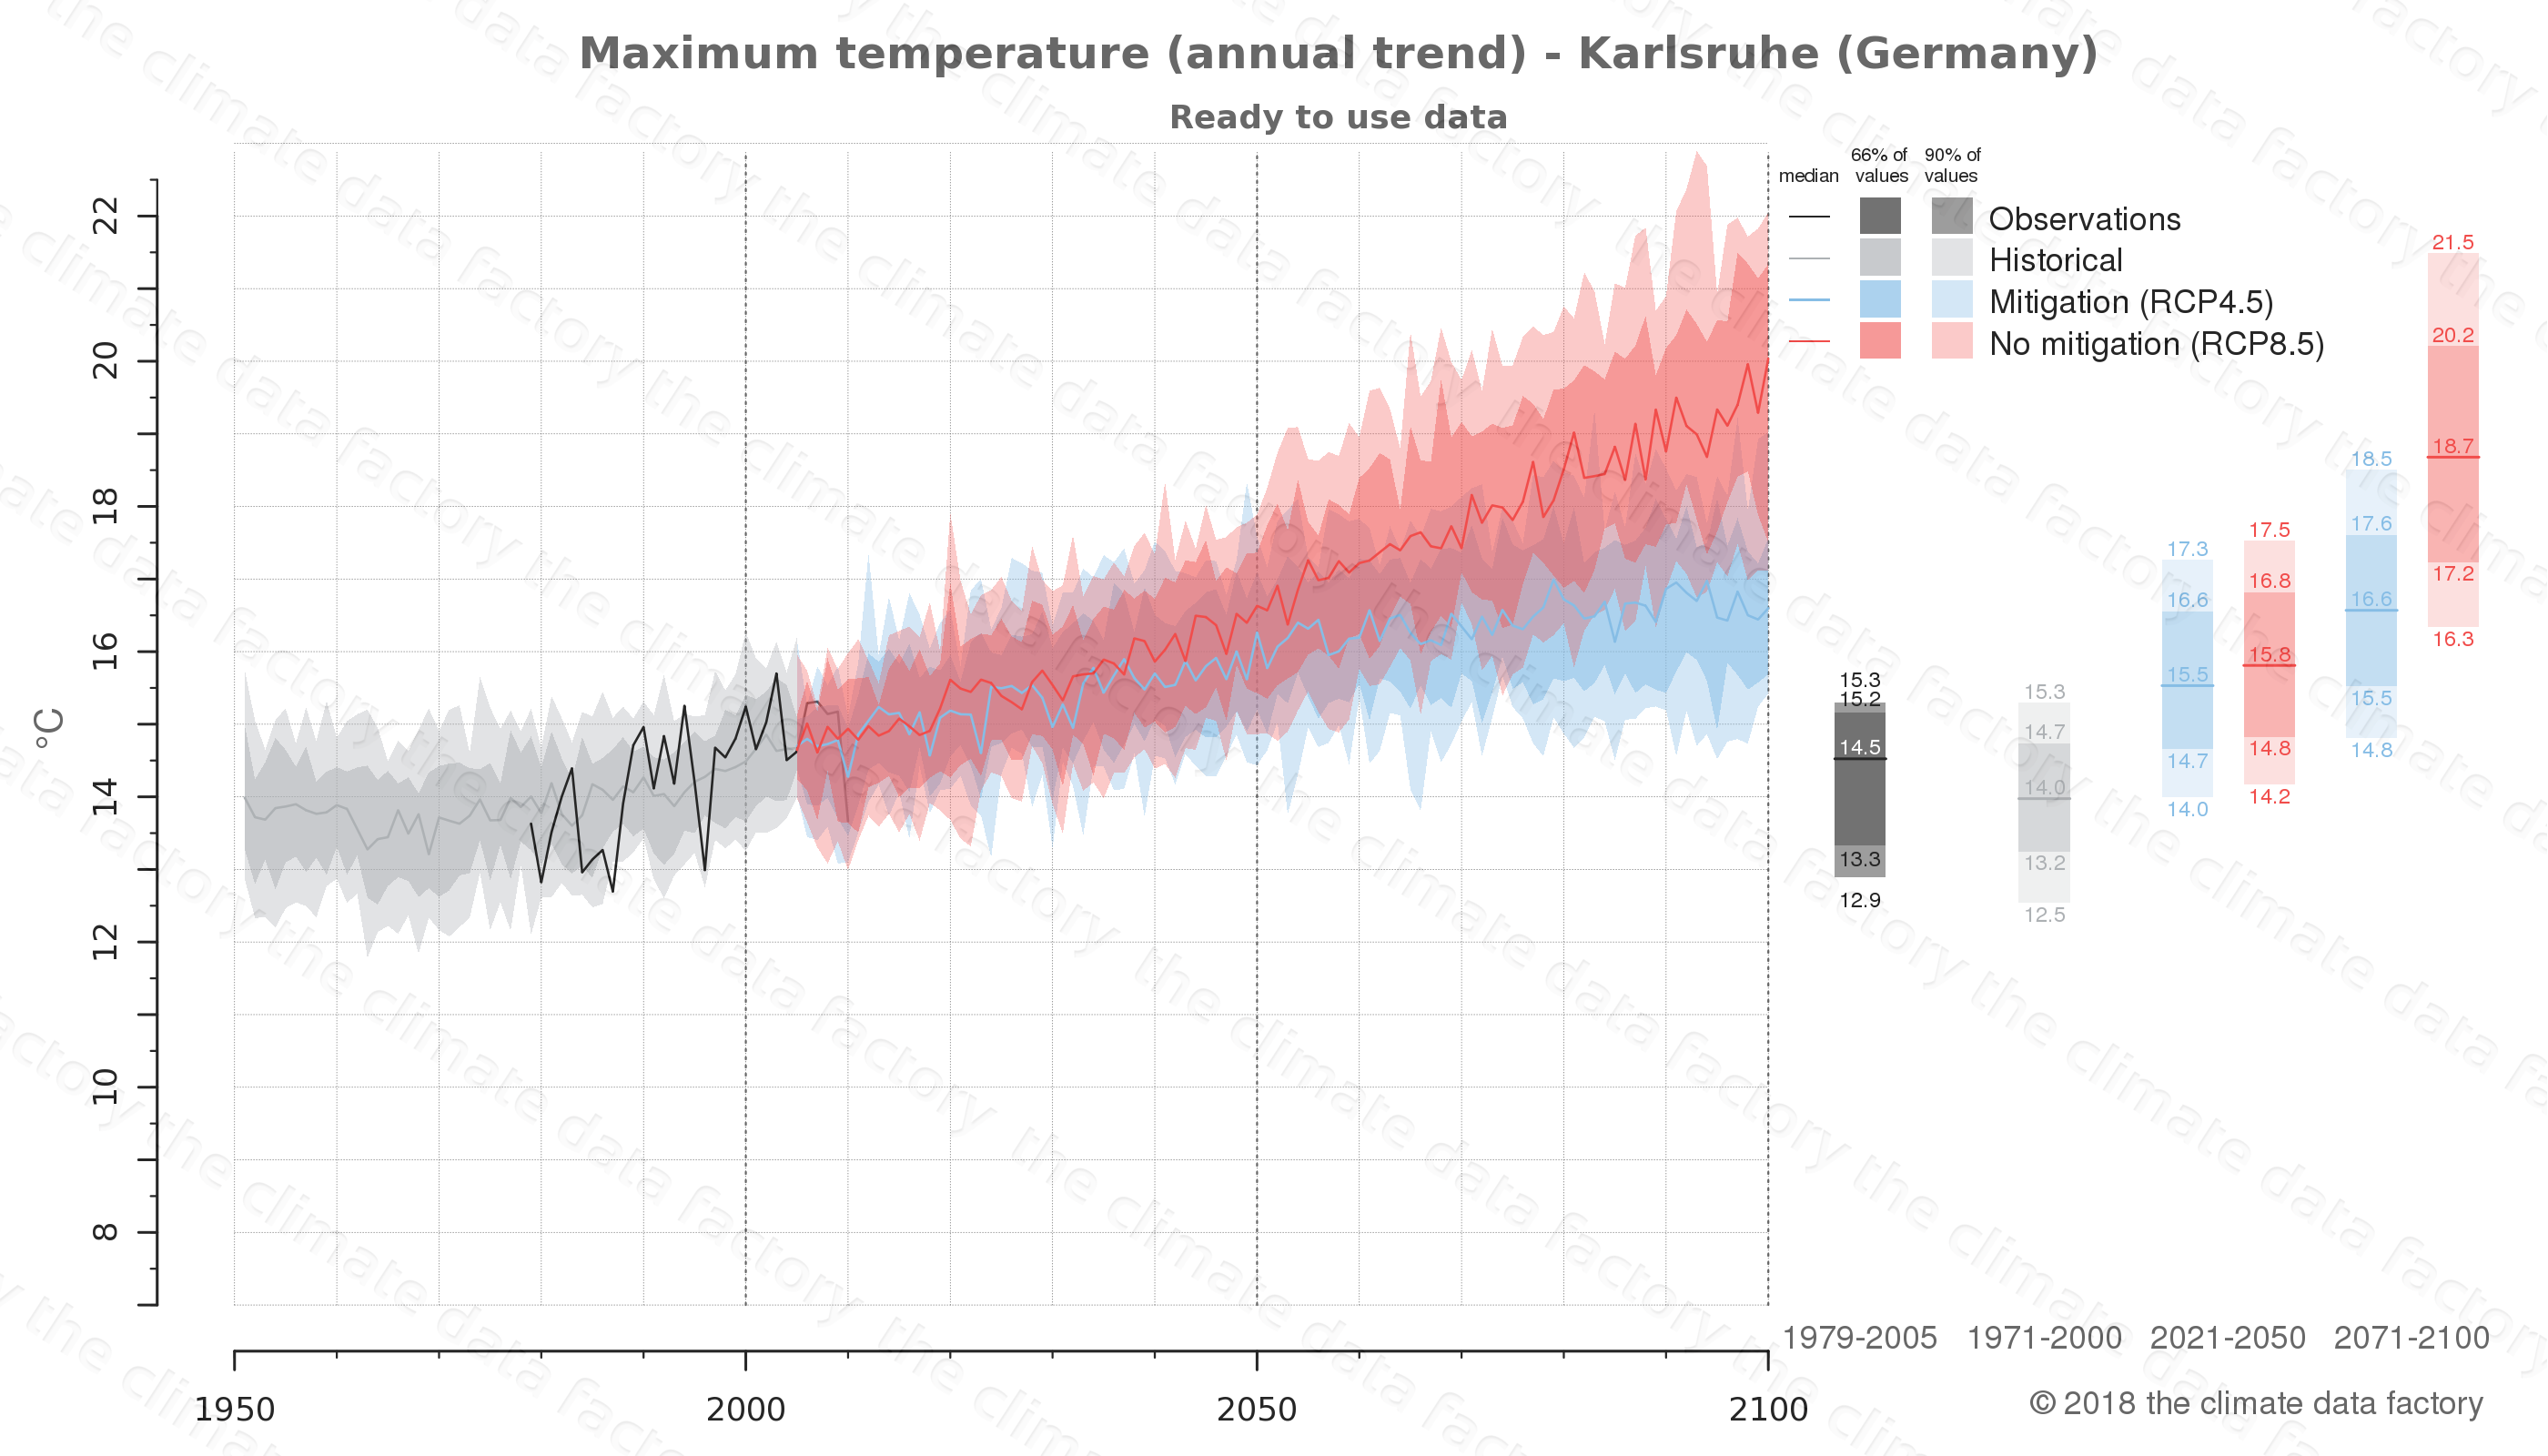 climate change data policy adaptation climate graph city data maximum-temperature karlsruhe germany